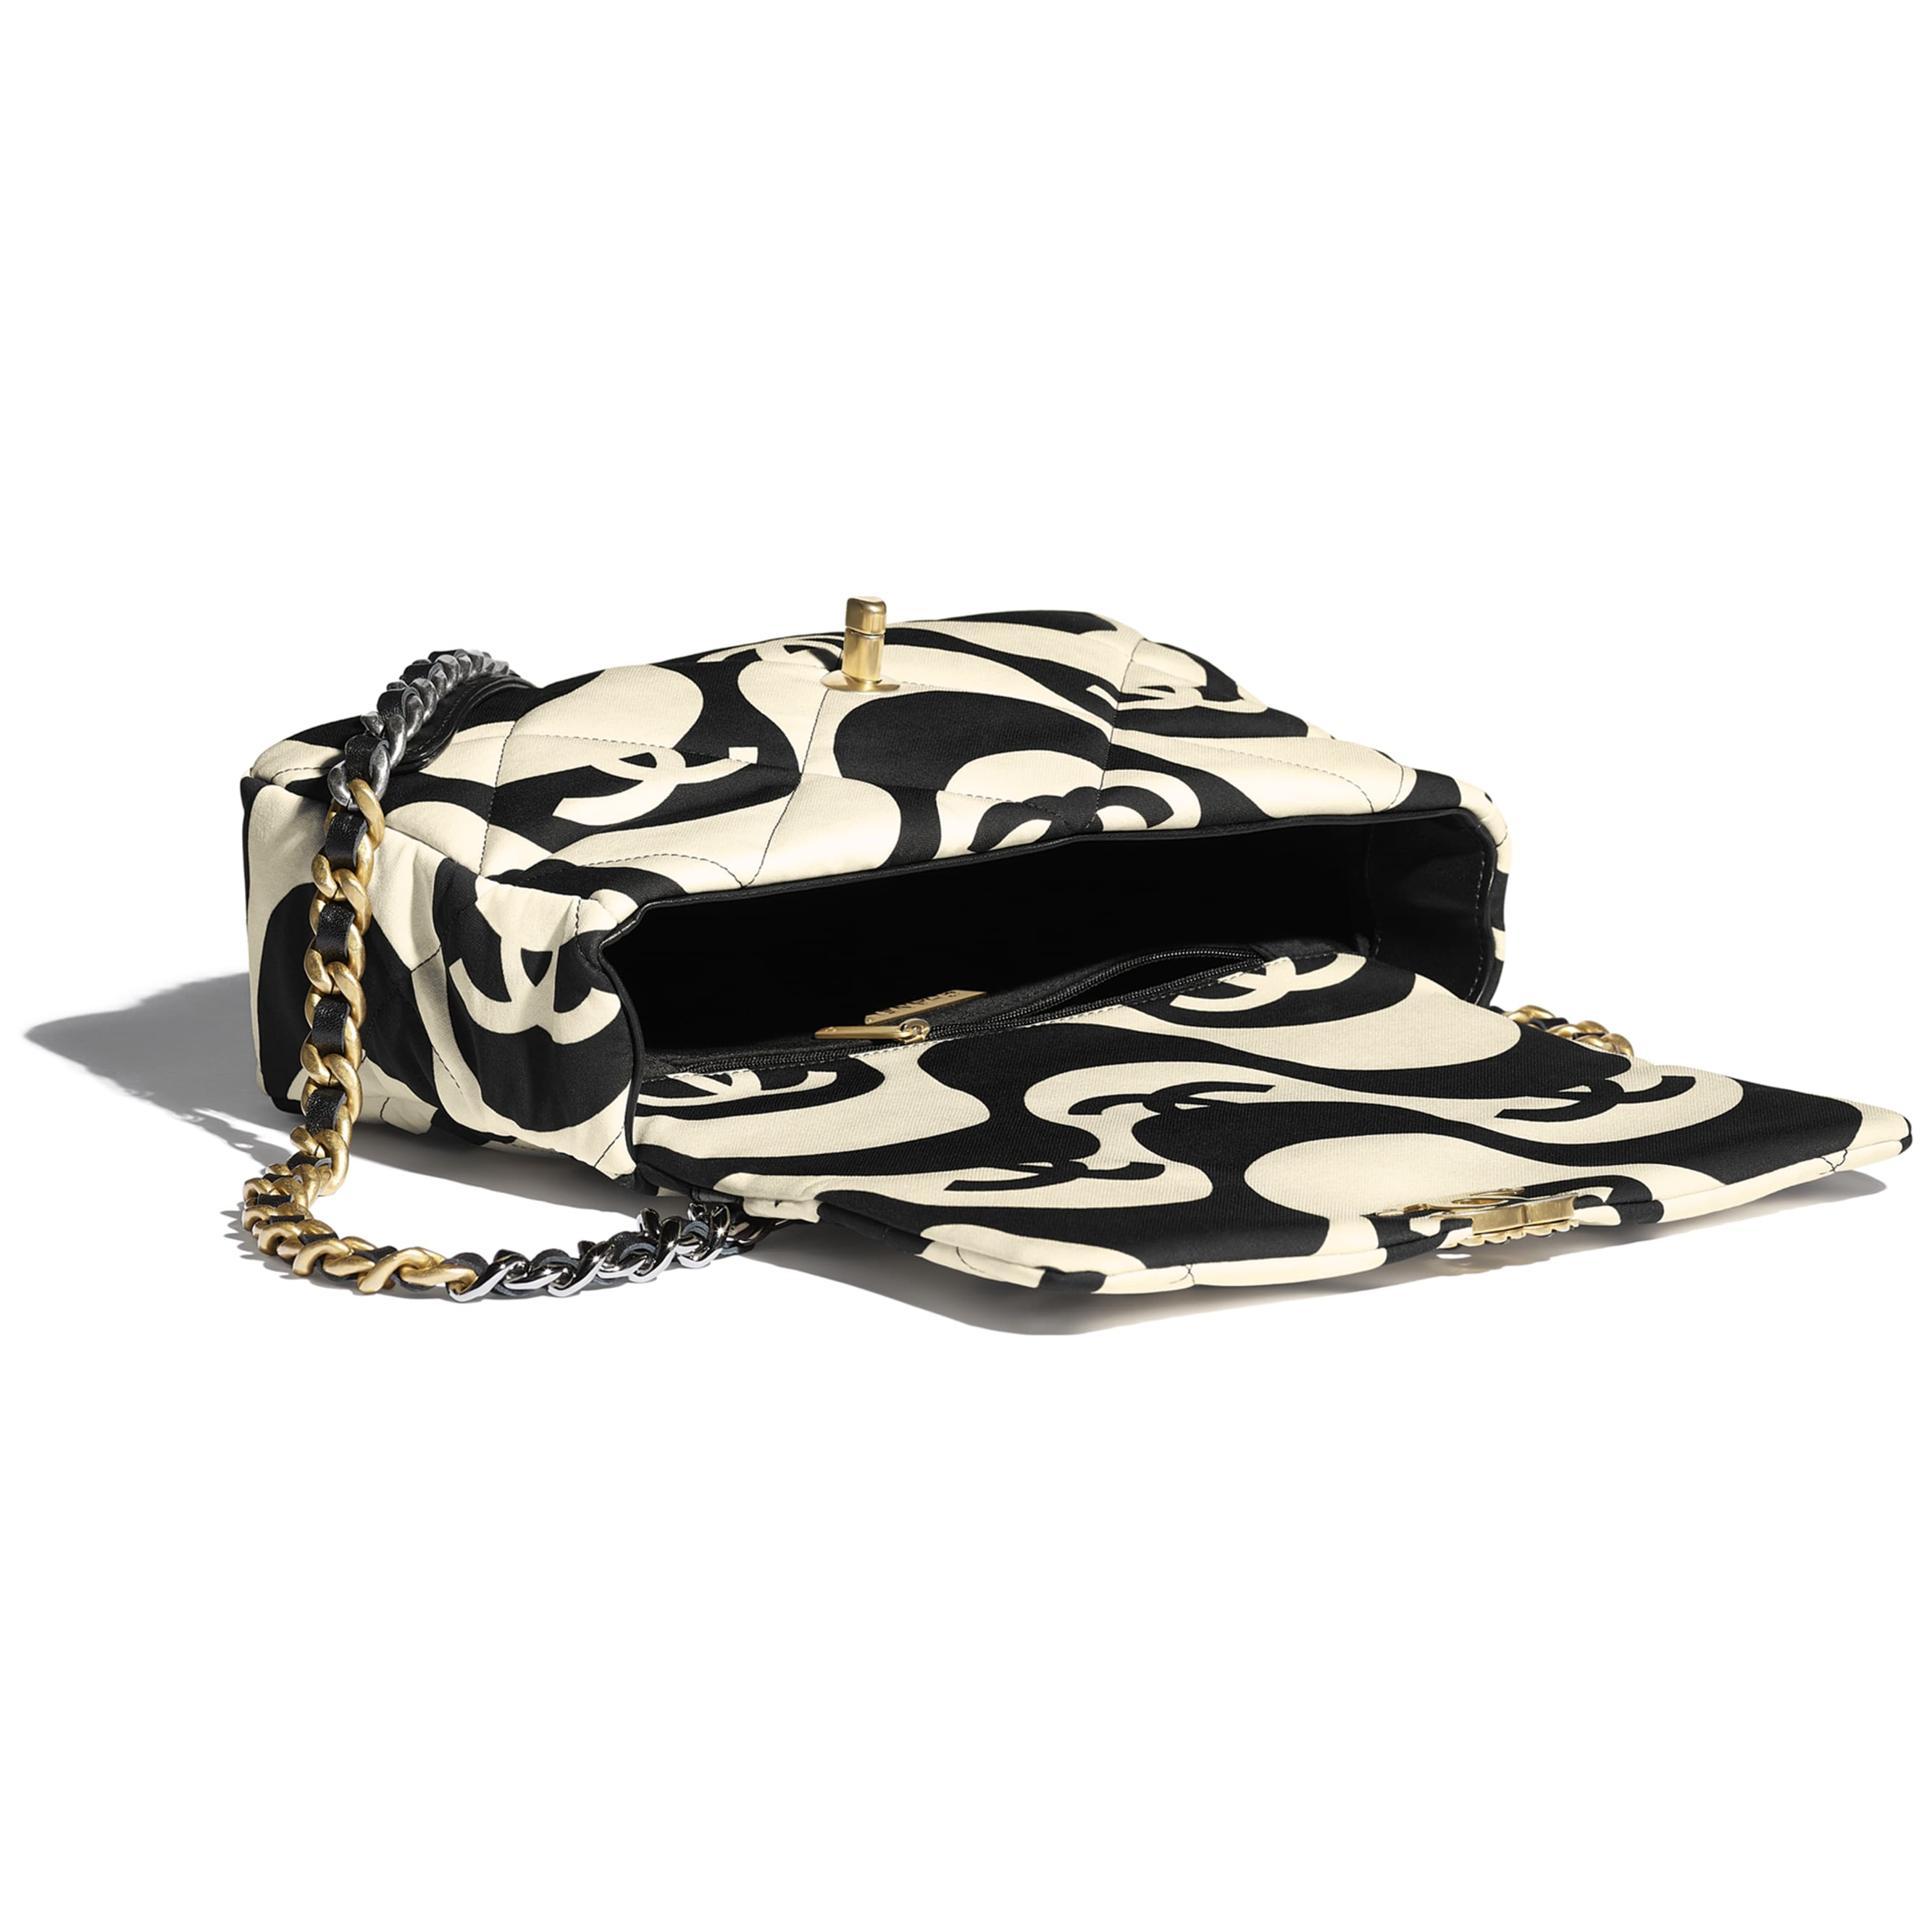 CHANEL 19 Large Flap Bag - Black & Ecru - Printed Fabric, Gold-Tone, Silver-Tone & Ruthenium-Finish Metal - CHANEL - Other view - see standard sized version